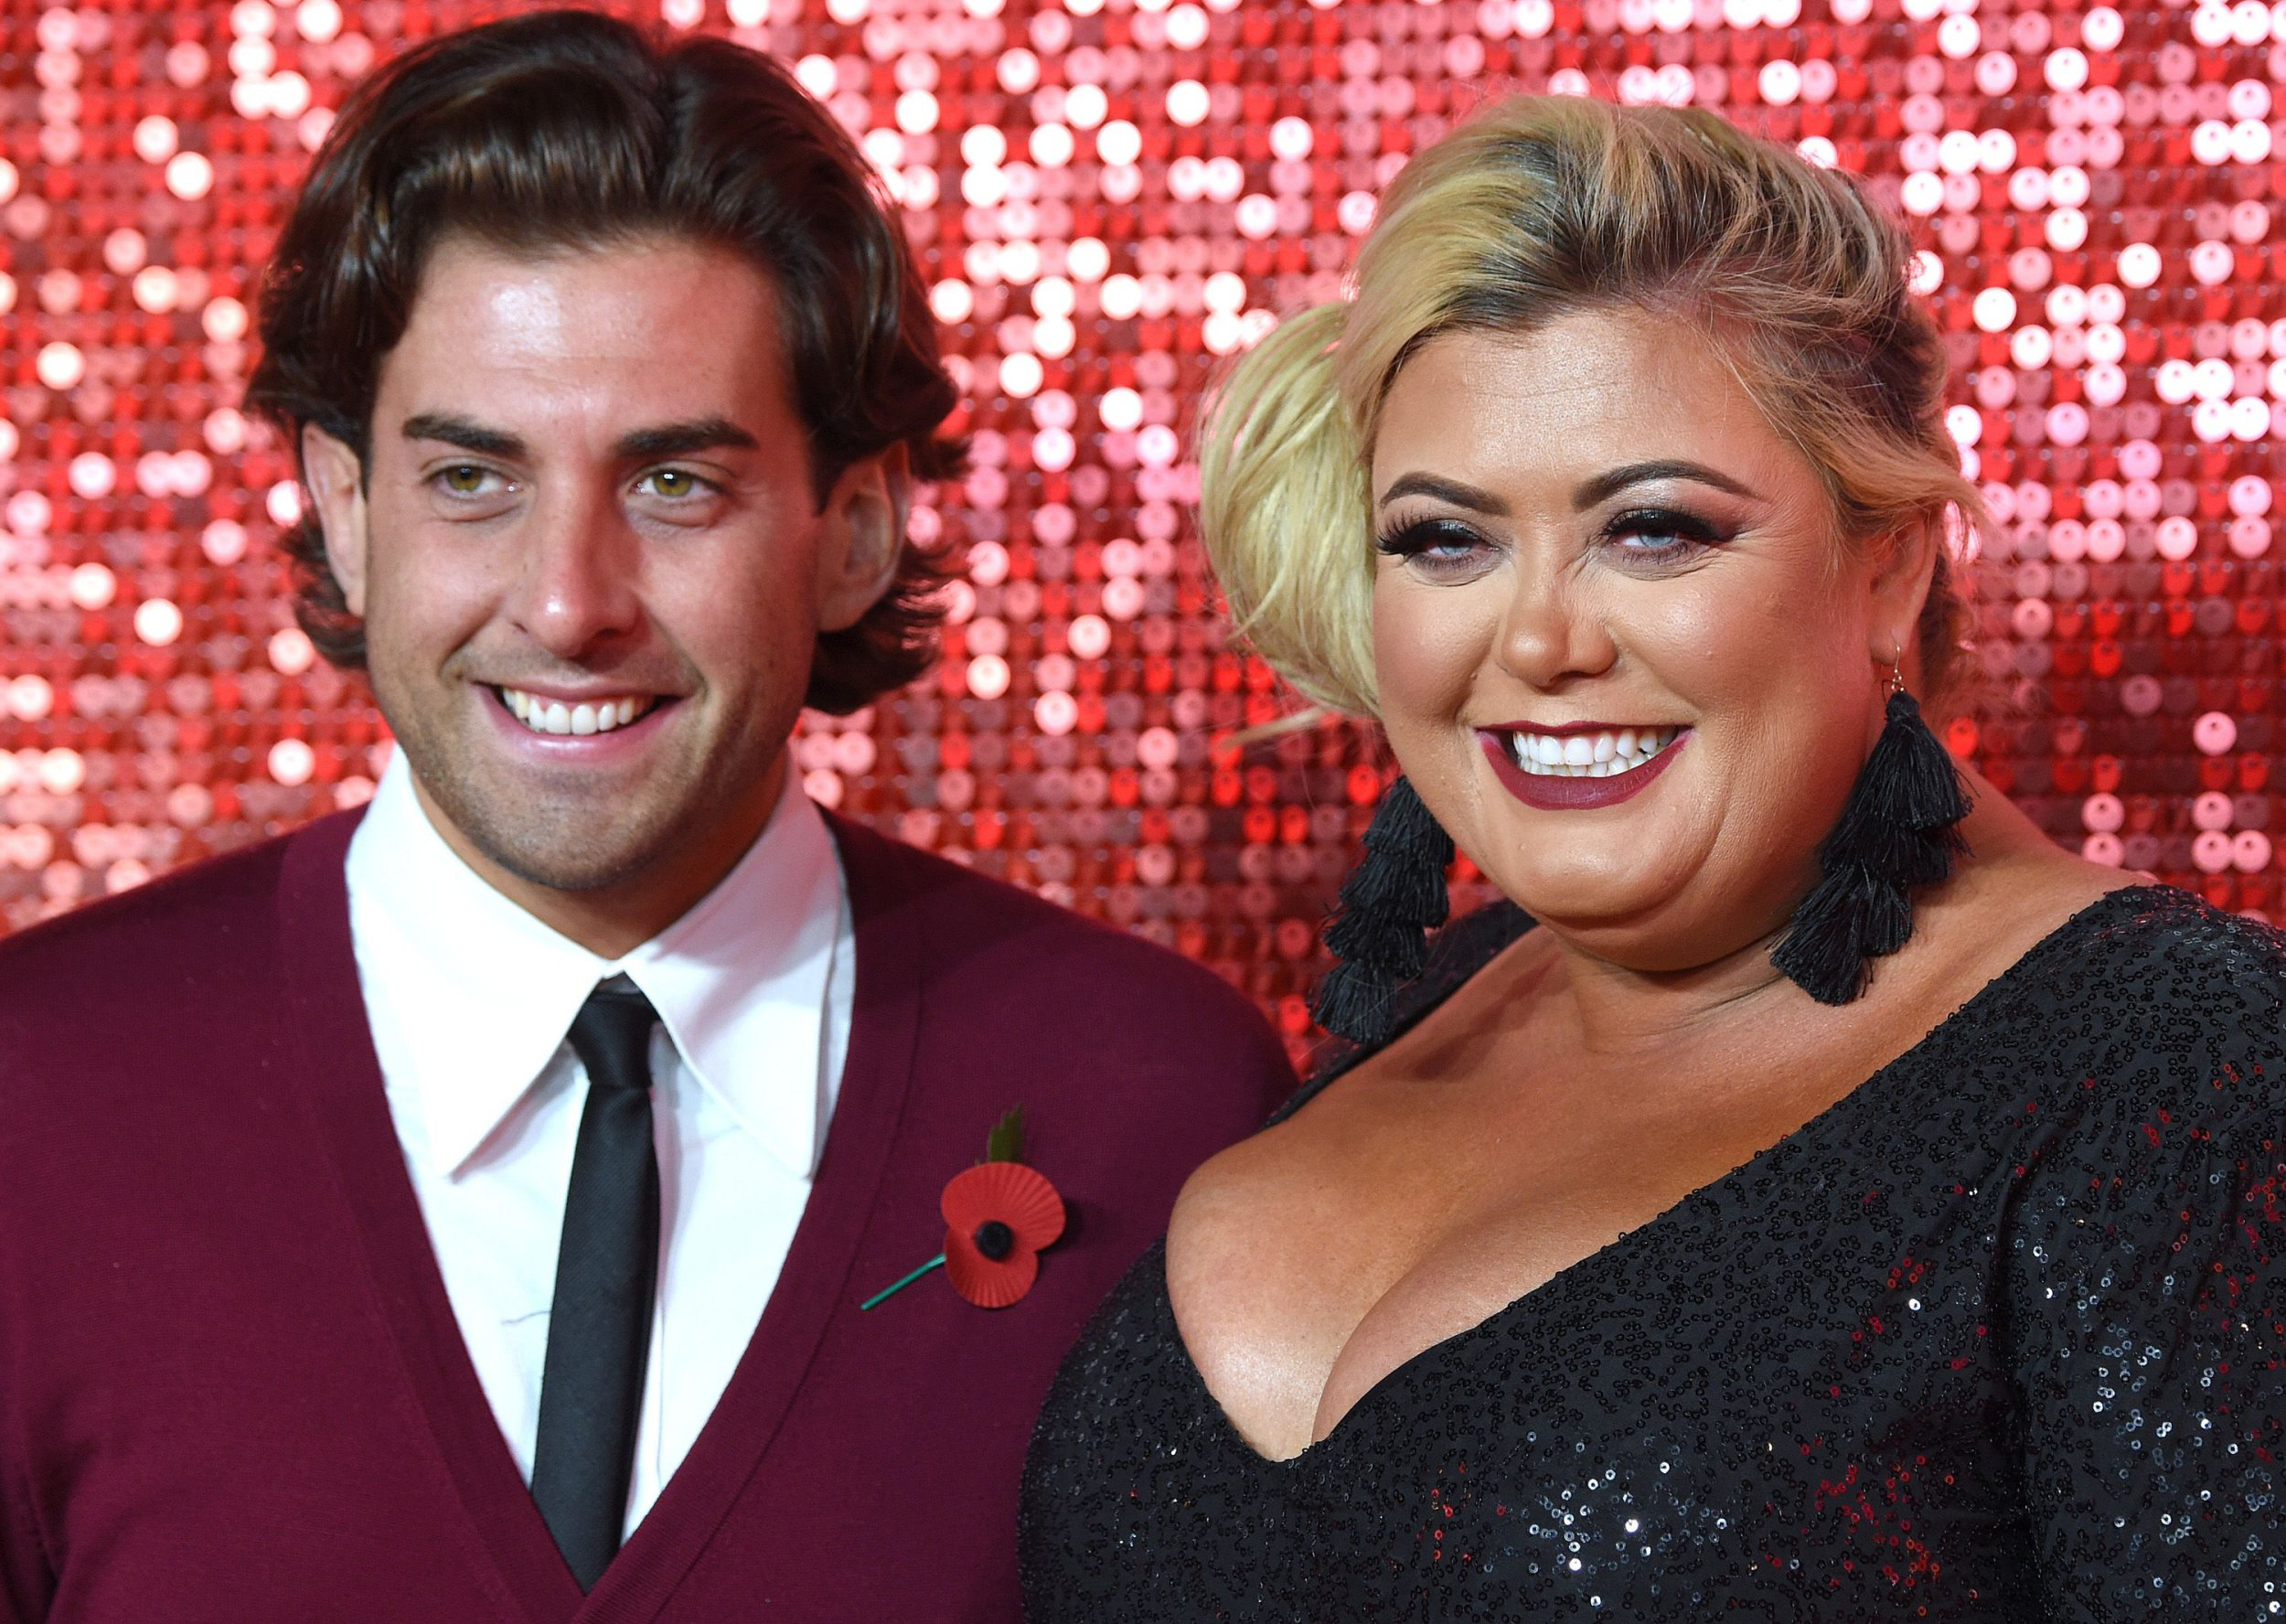 Celebs Go Dating's Nadia Essex slams Arg for keeping Gemma Collins 'dangling for six whole years'